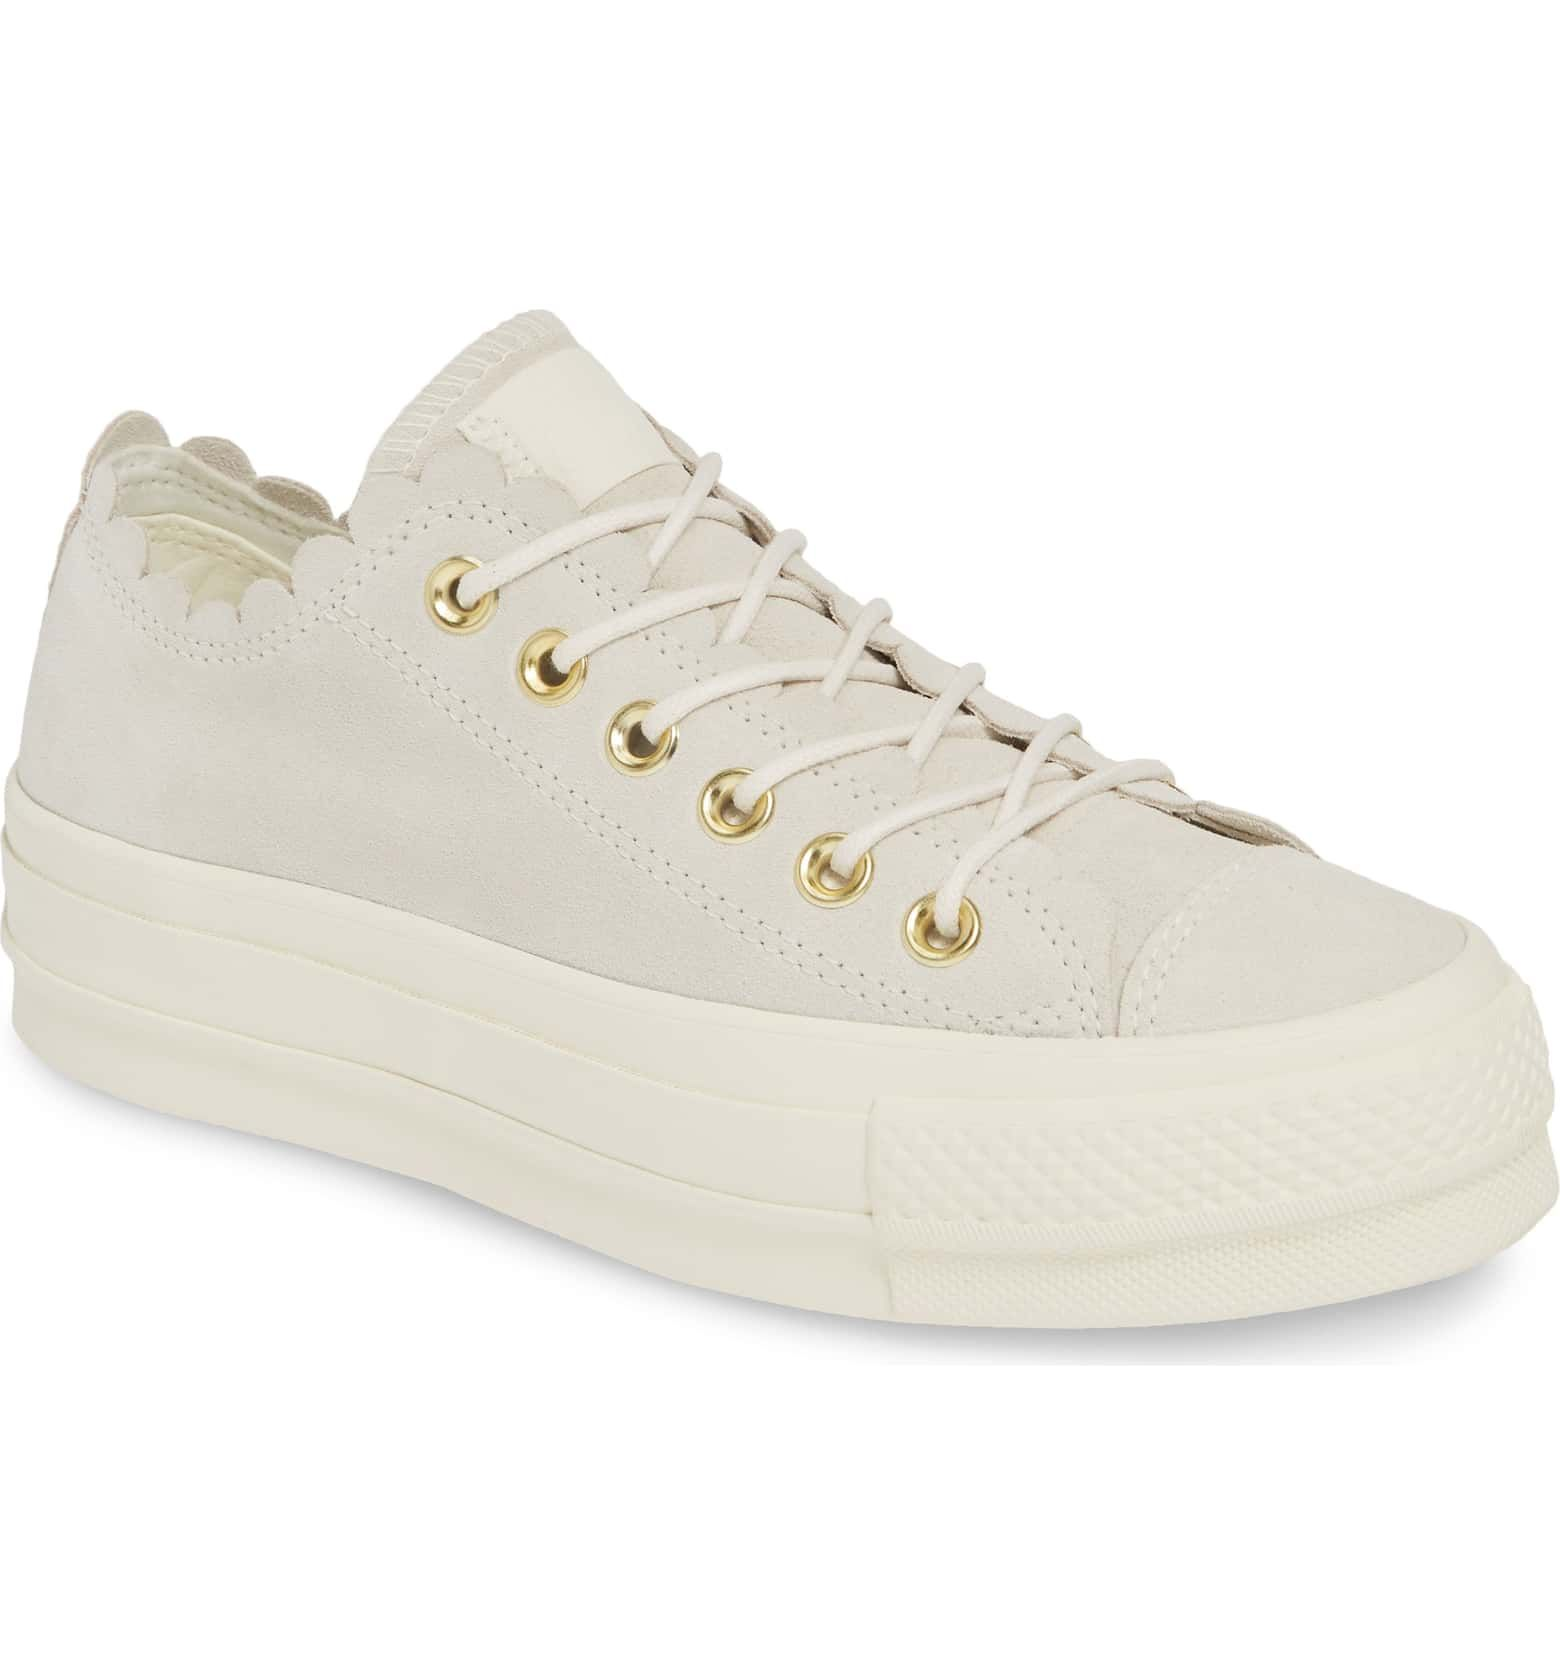 womens frilly converse